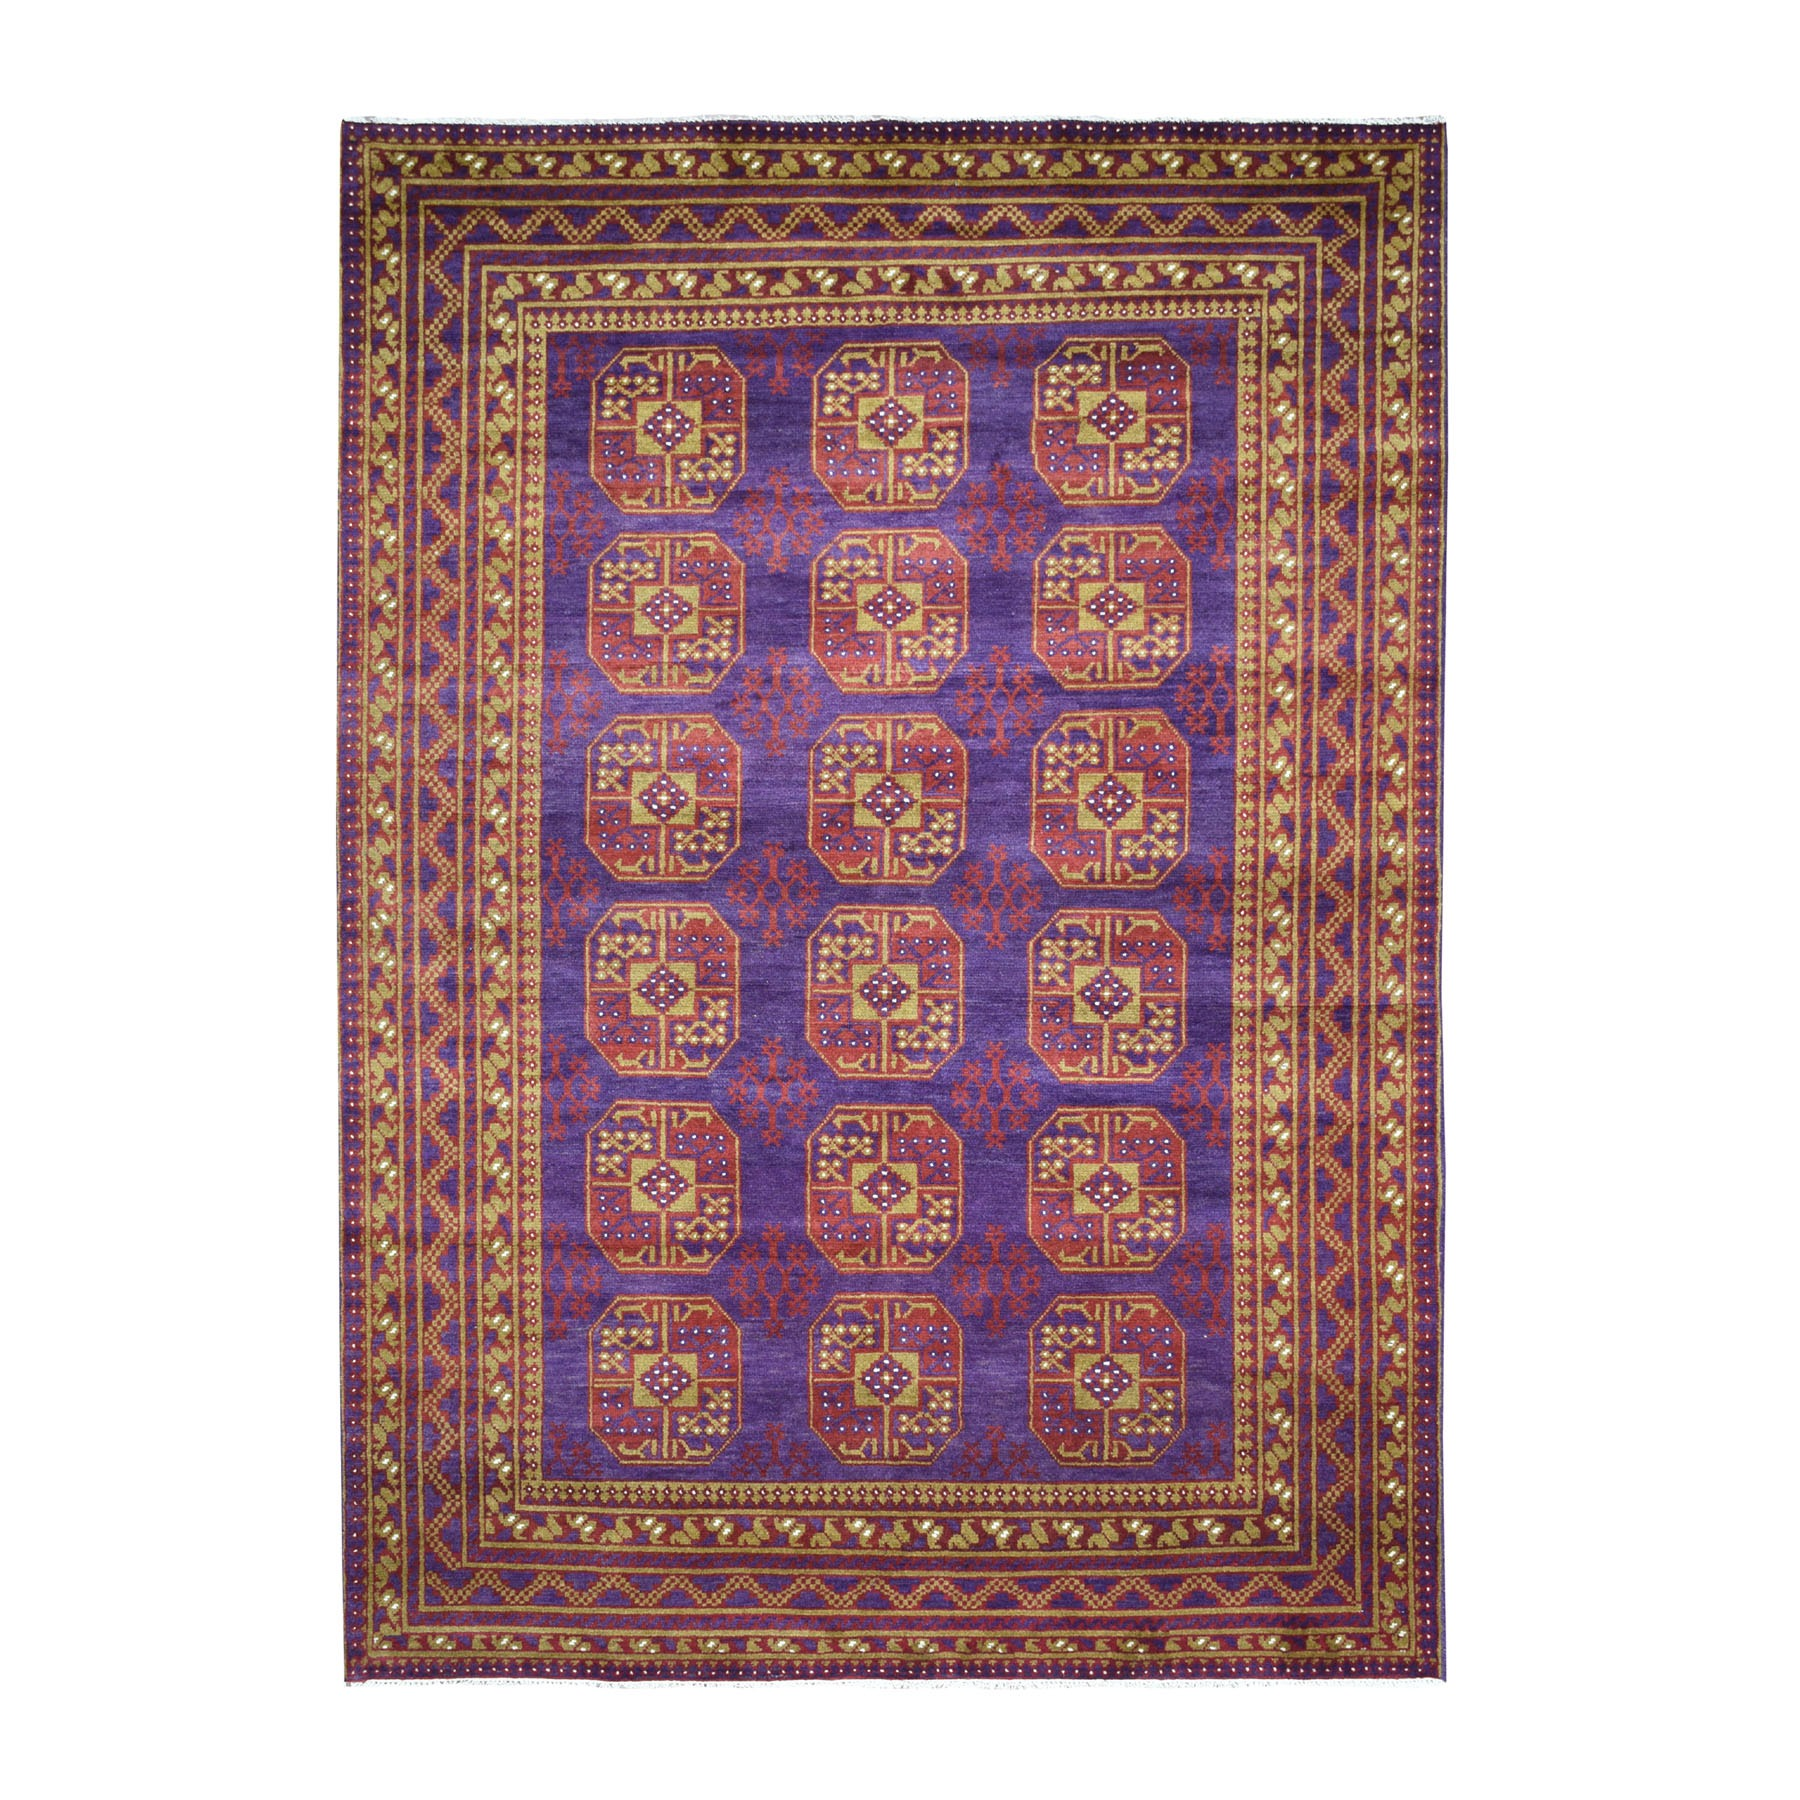 "6'7""x9'2"" Purple Elephant Feet Design Colorful Afghan Baluch Hand Woven Pure Wool Oriental Rug"